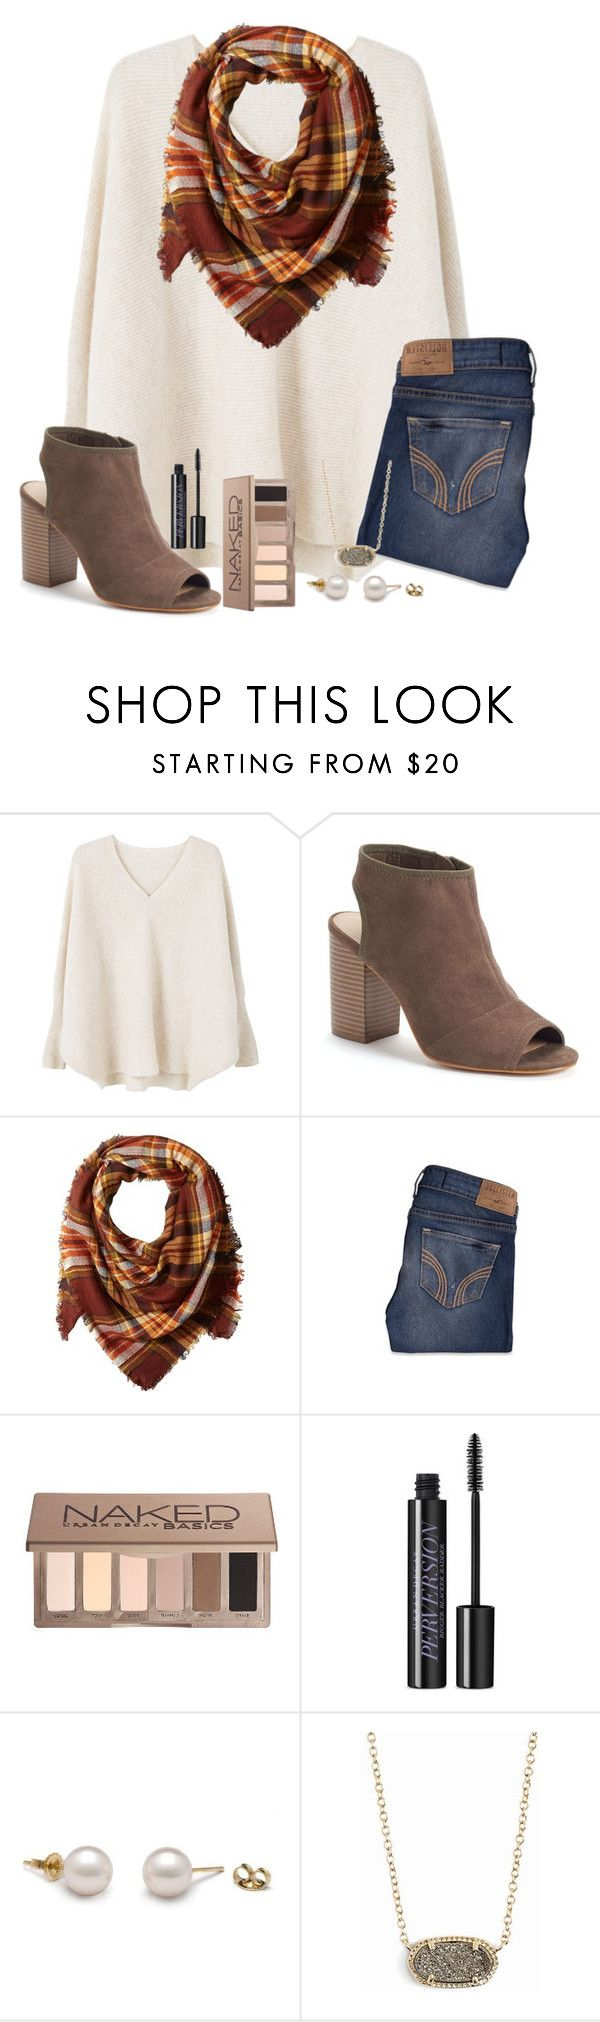 """""""i'm back"""" by abby14310 ❤ liked on Polyvore featuring MANGO, Apt. 9, La Fiorentina, Hollister Co., Urban Decay and Kendra Scott"""